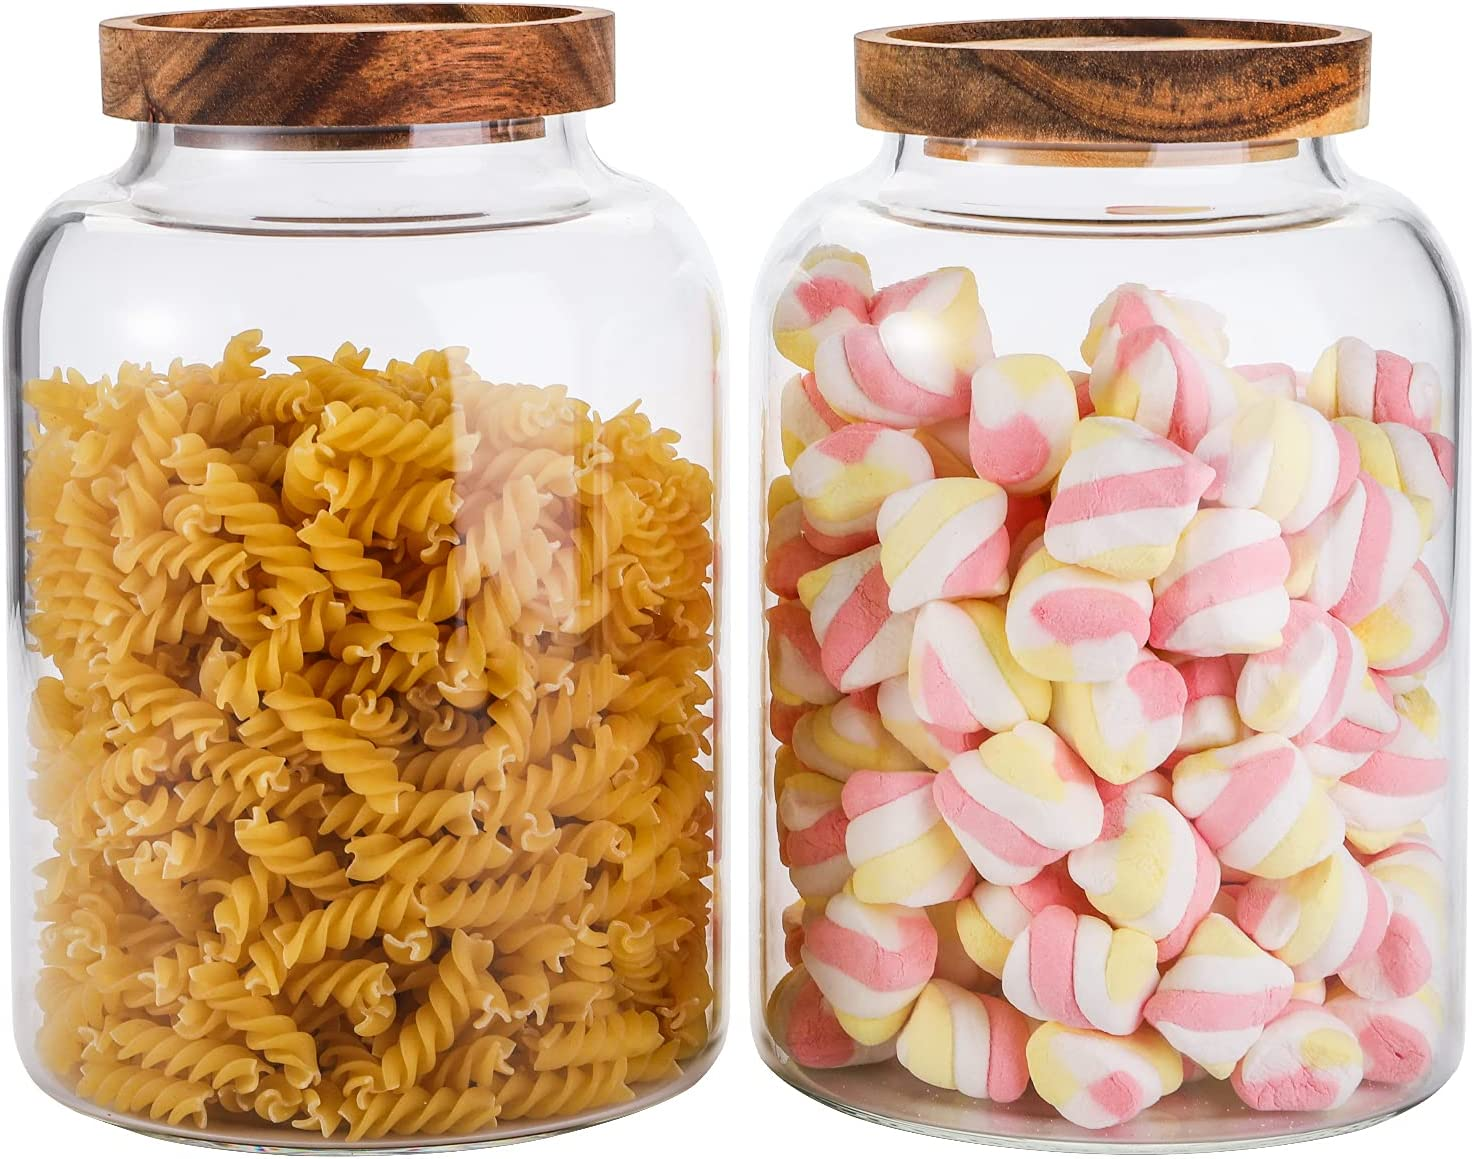 Bekith 2 Pack Large Glass Food Storage Container with Airtight Wooden Lid, 66 FL OZ(1950ml) Glass Food Canister for Kitchen and Pantry Organization, Cereal Dispenser Jars for Spaghetti Pasta, Tea, Coffee